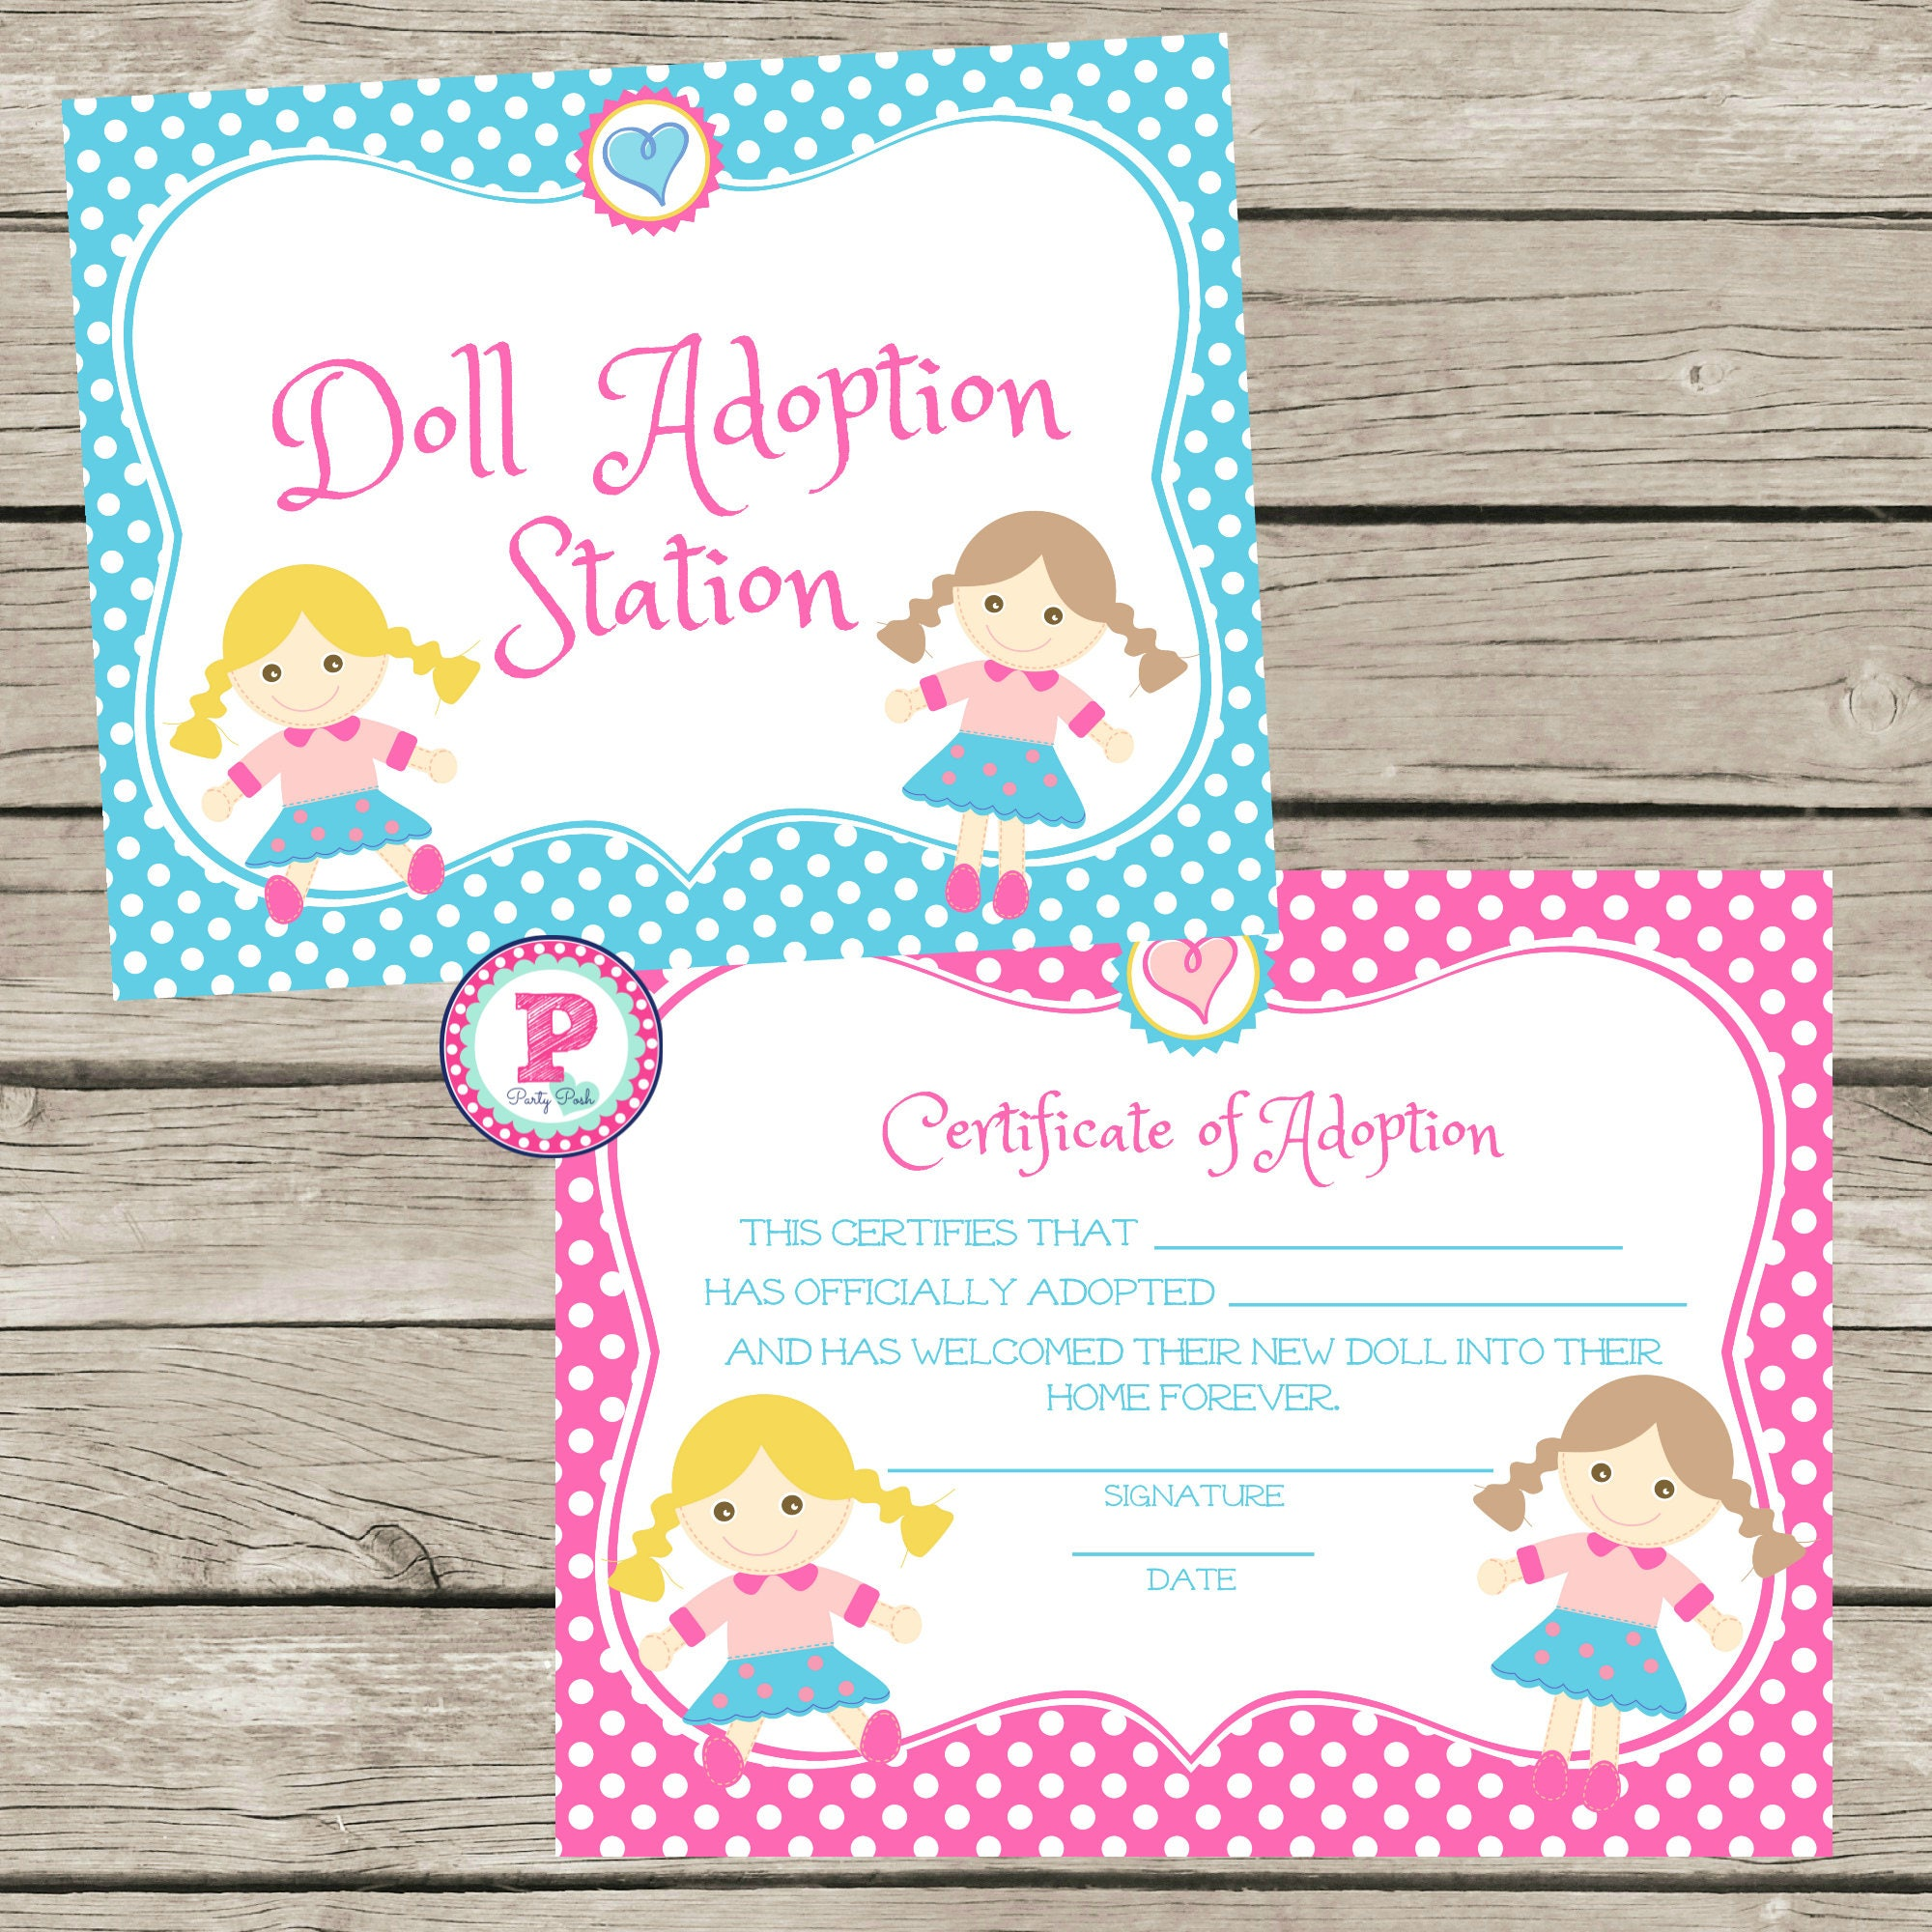 Doll Adoption Station and Adopt a Doll Adoption Certificate | Etsy